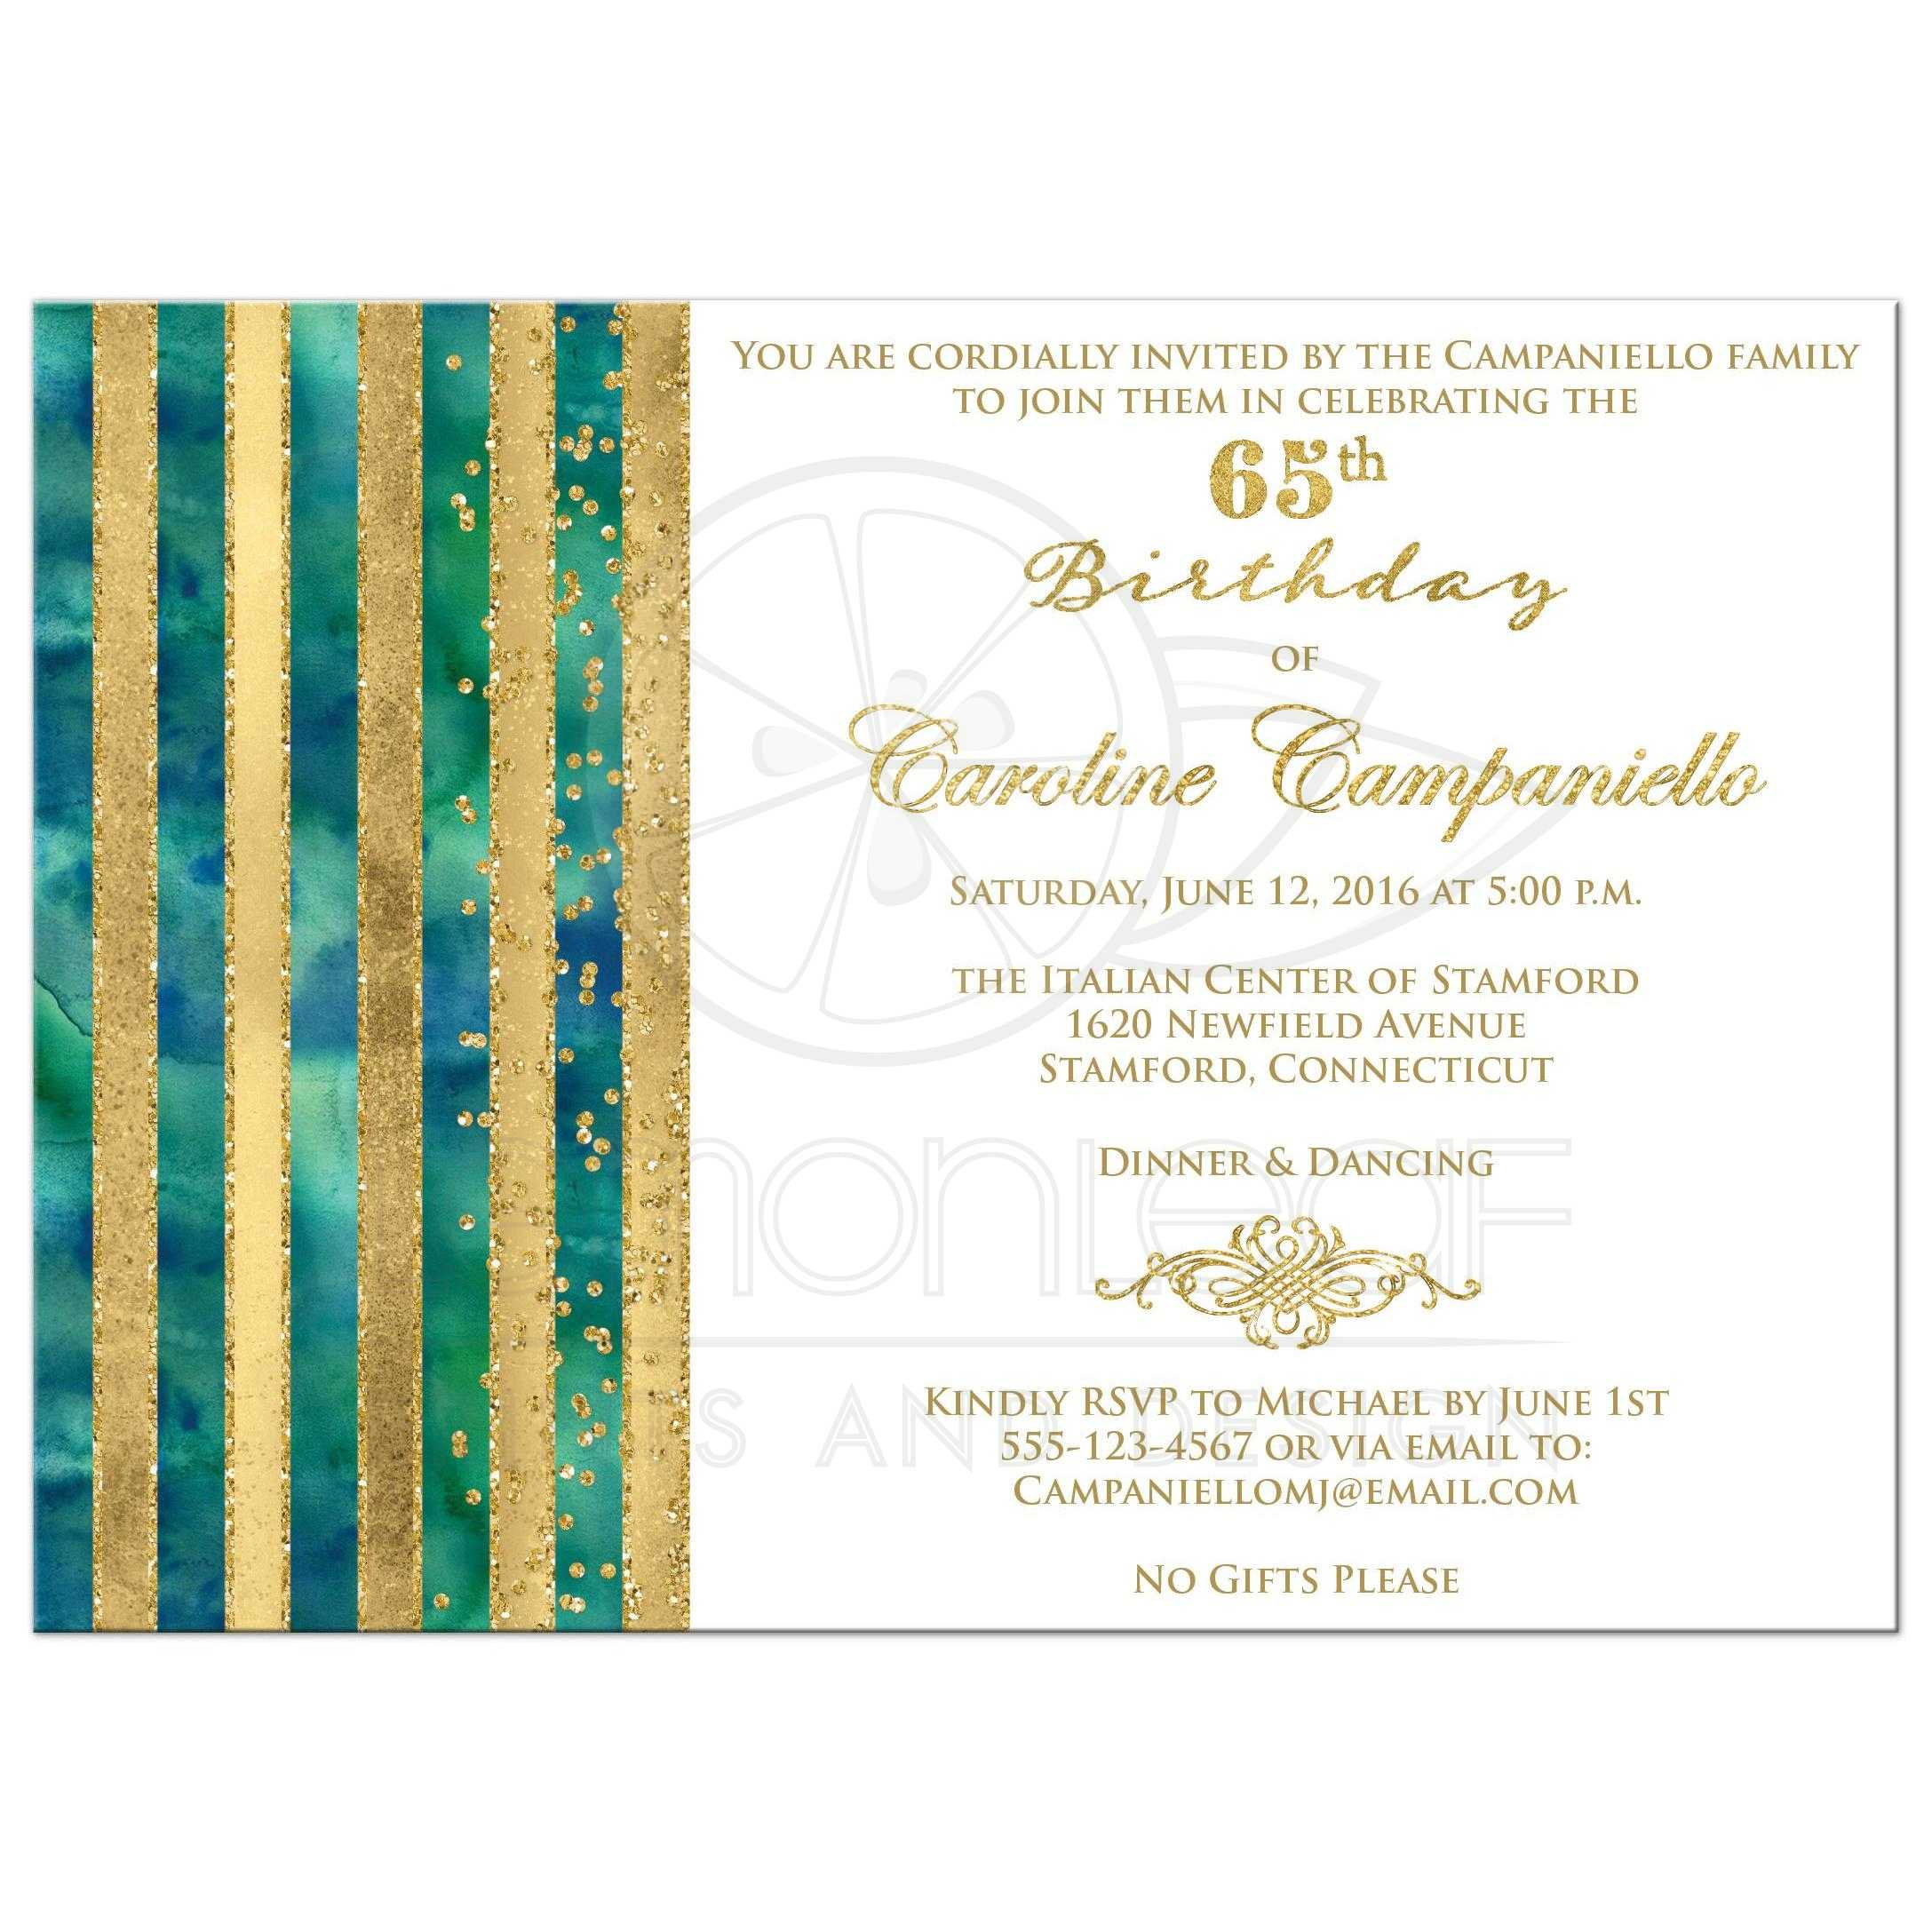 65th Birthday Invitation Peacock Blue Green Watercolors Gold